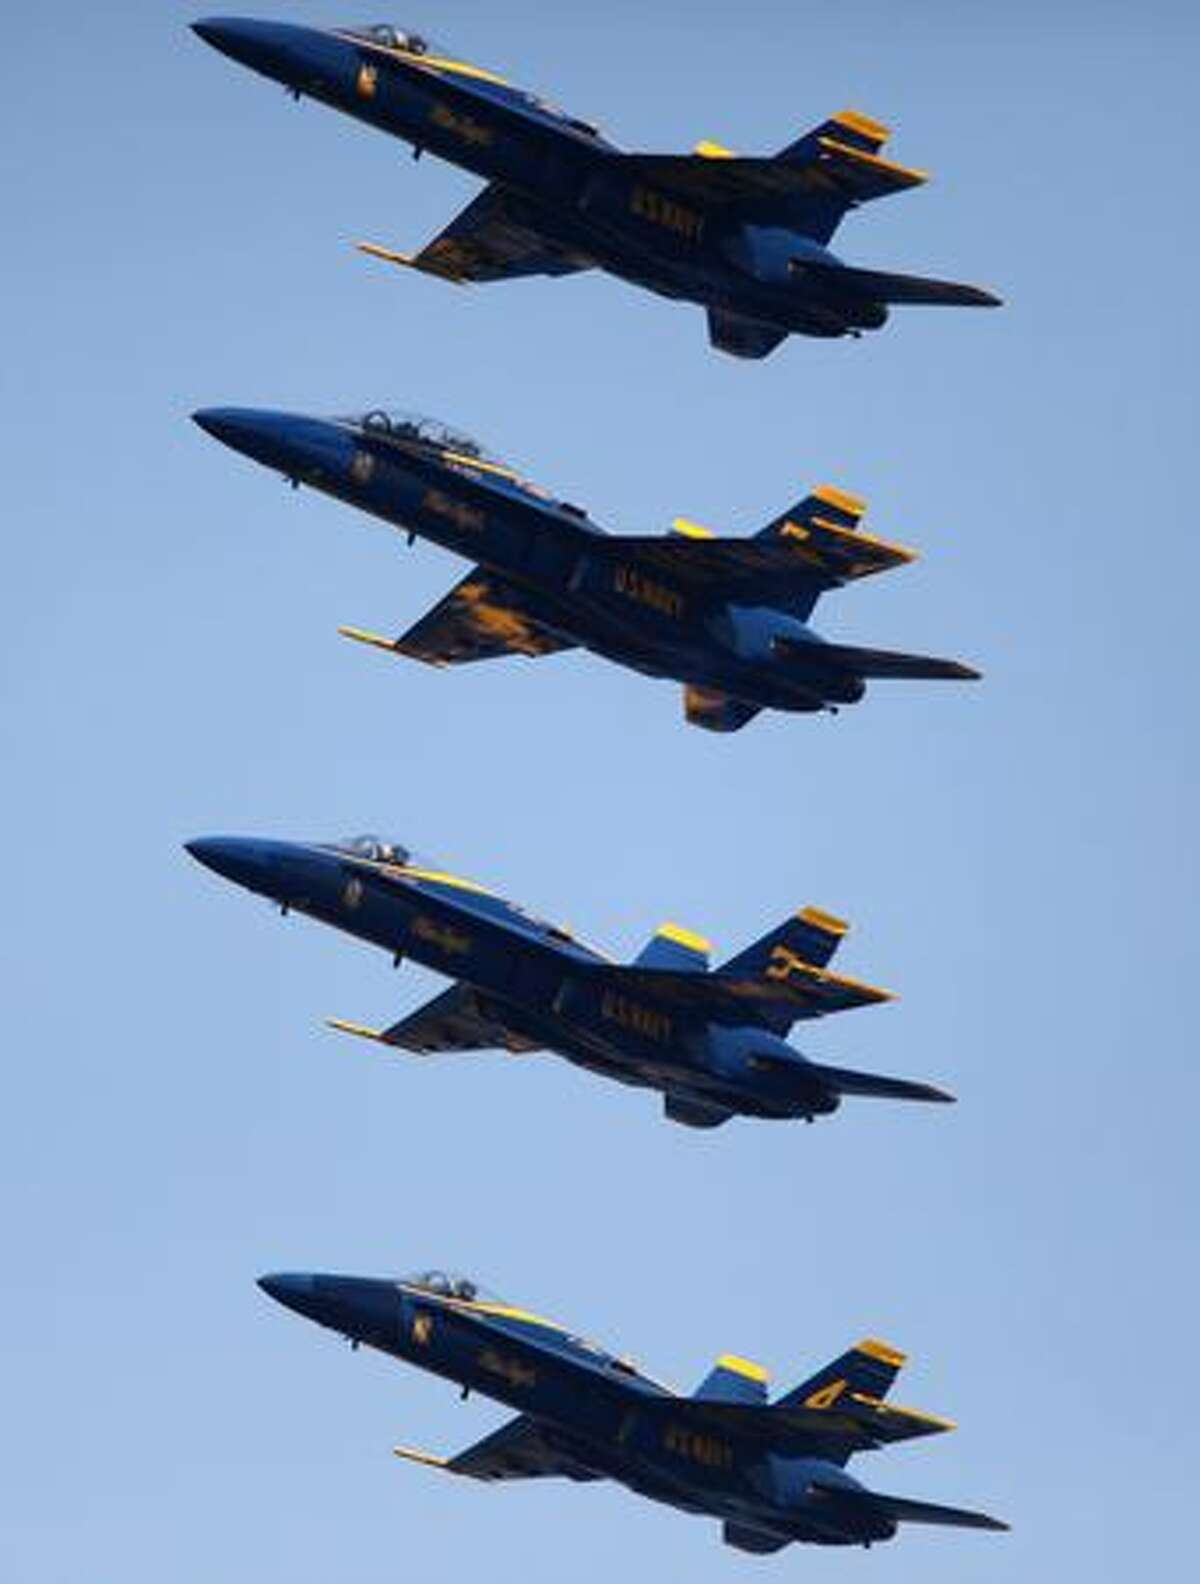 The U.S. Navy Blue Angels demonstration team fly their Boeing F/A-18 Hornets over Lake Washington during a practice on Thursday in Seattle.